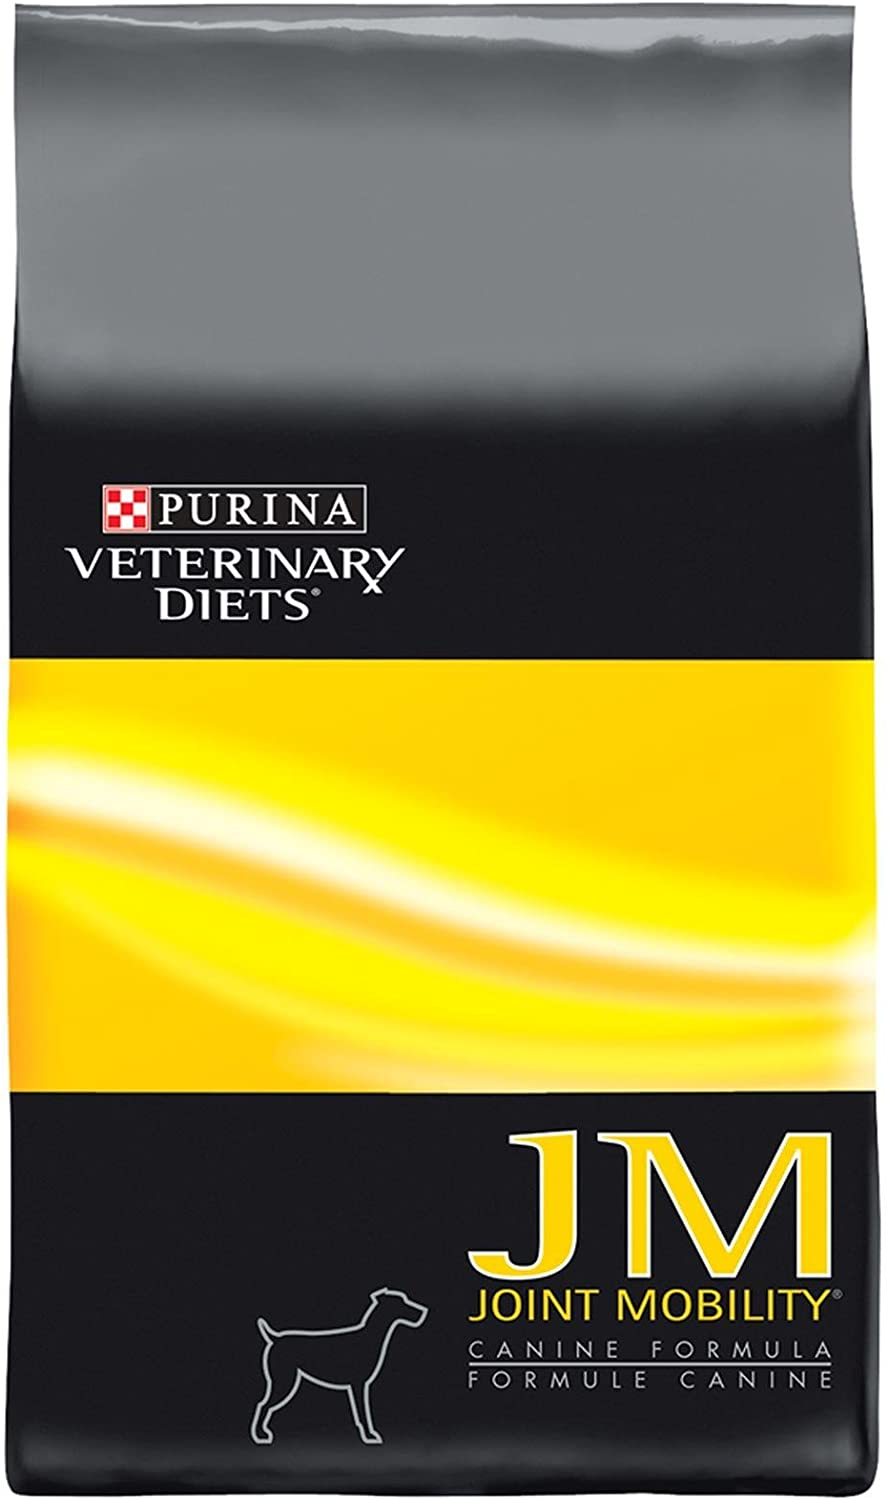 Purina Veterinary Diets Canine JM Joint Mobility – 32lb